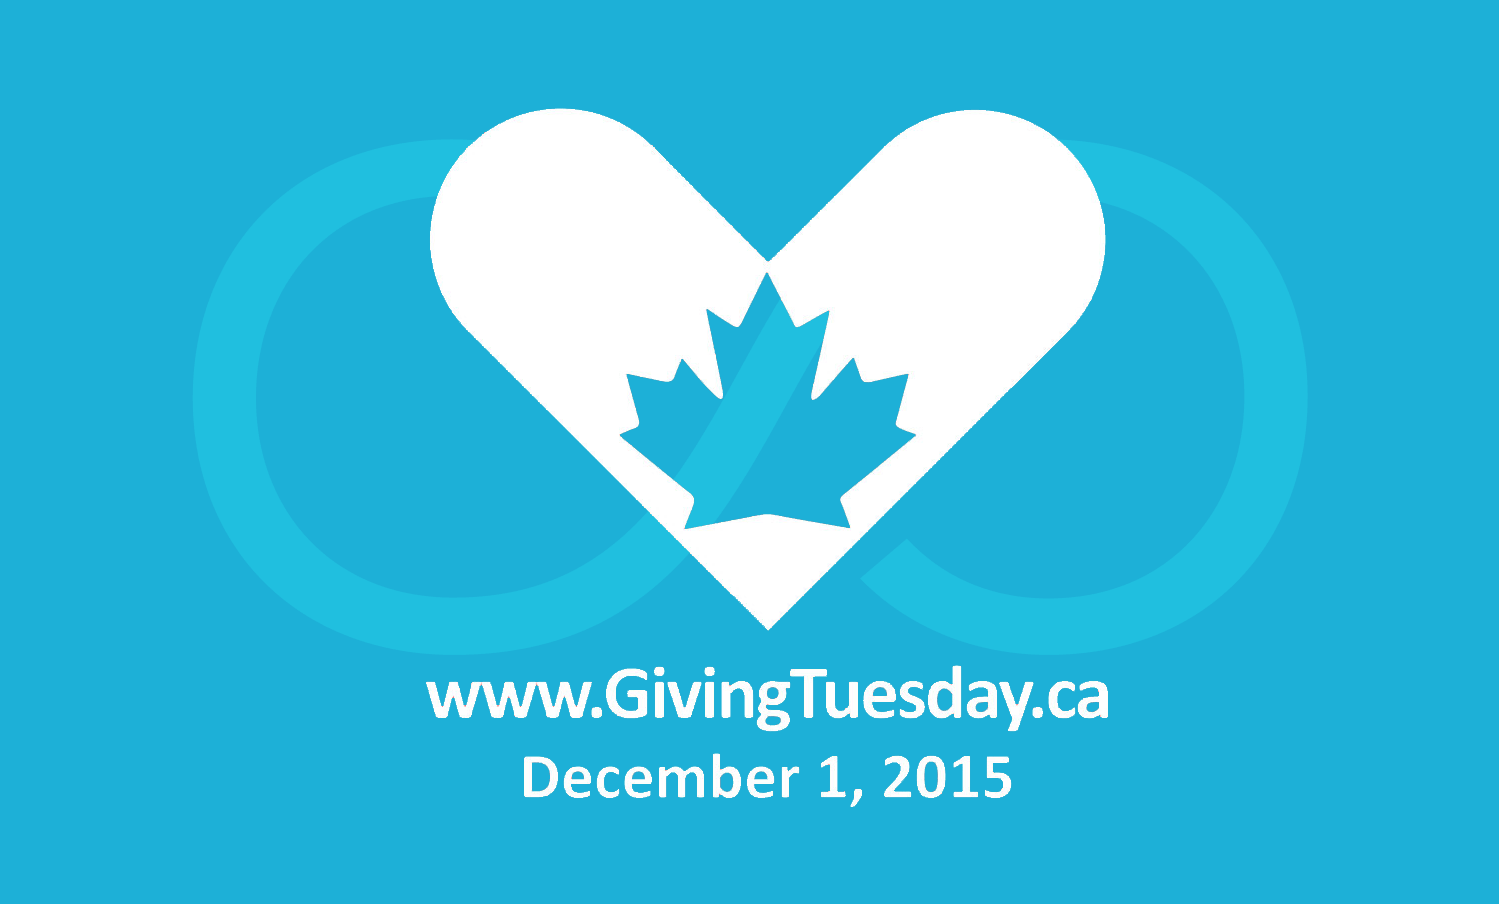 GivingTuesday.ca and Vancouver Foundation celebrate Giving Tuesday